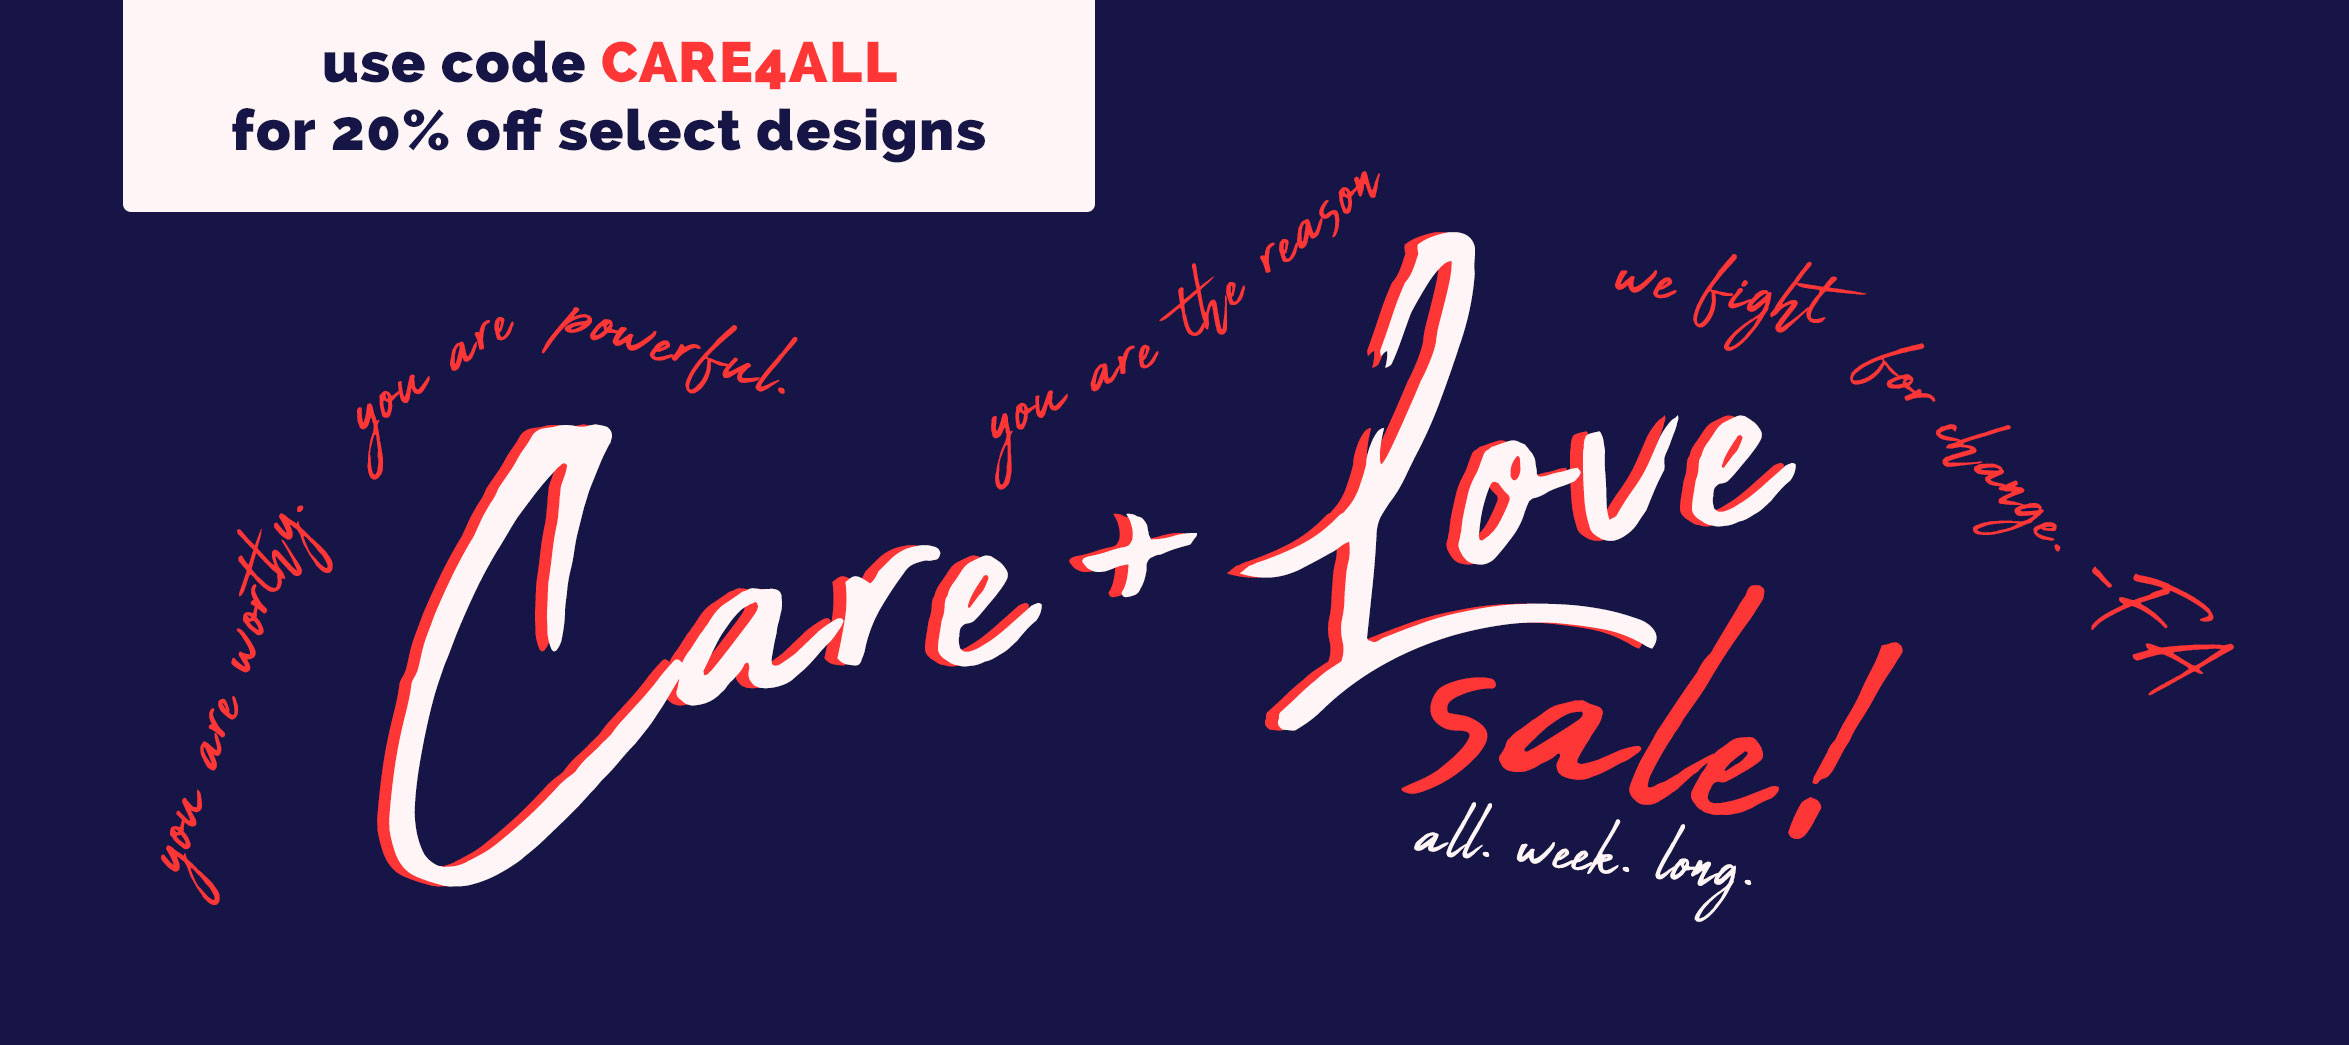 Care + Love Sale! All week long. Use code CARE4ALL for 20% off select designs